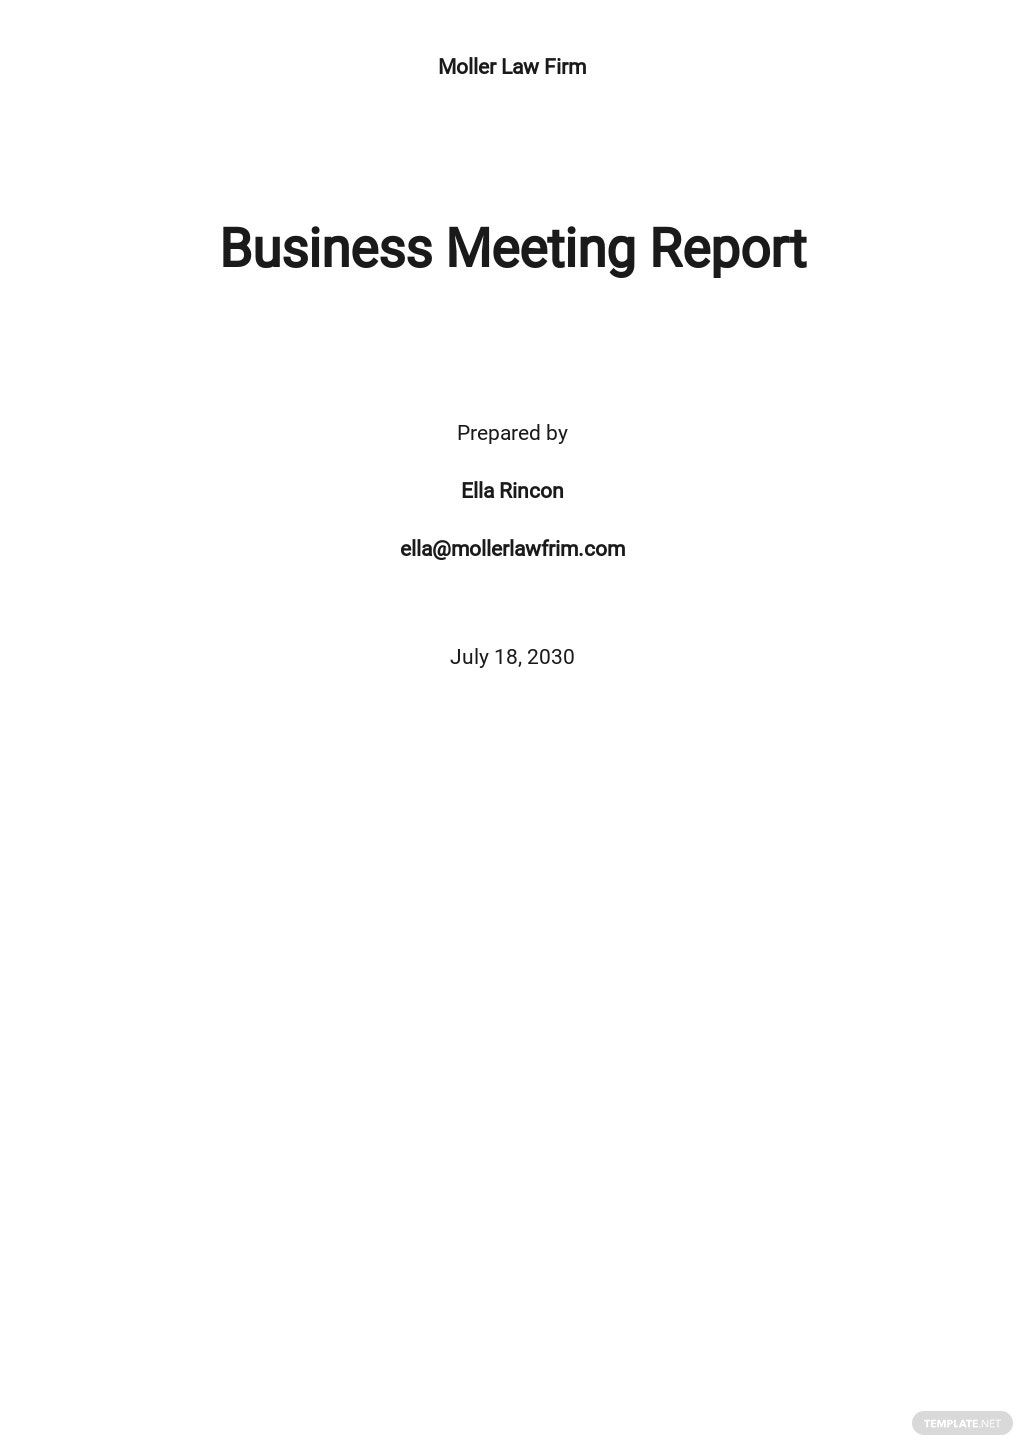 Business Meeting Report Template